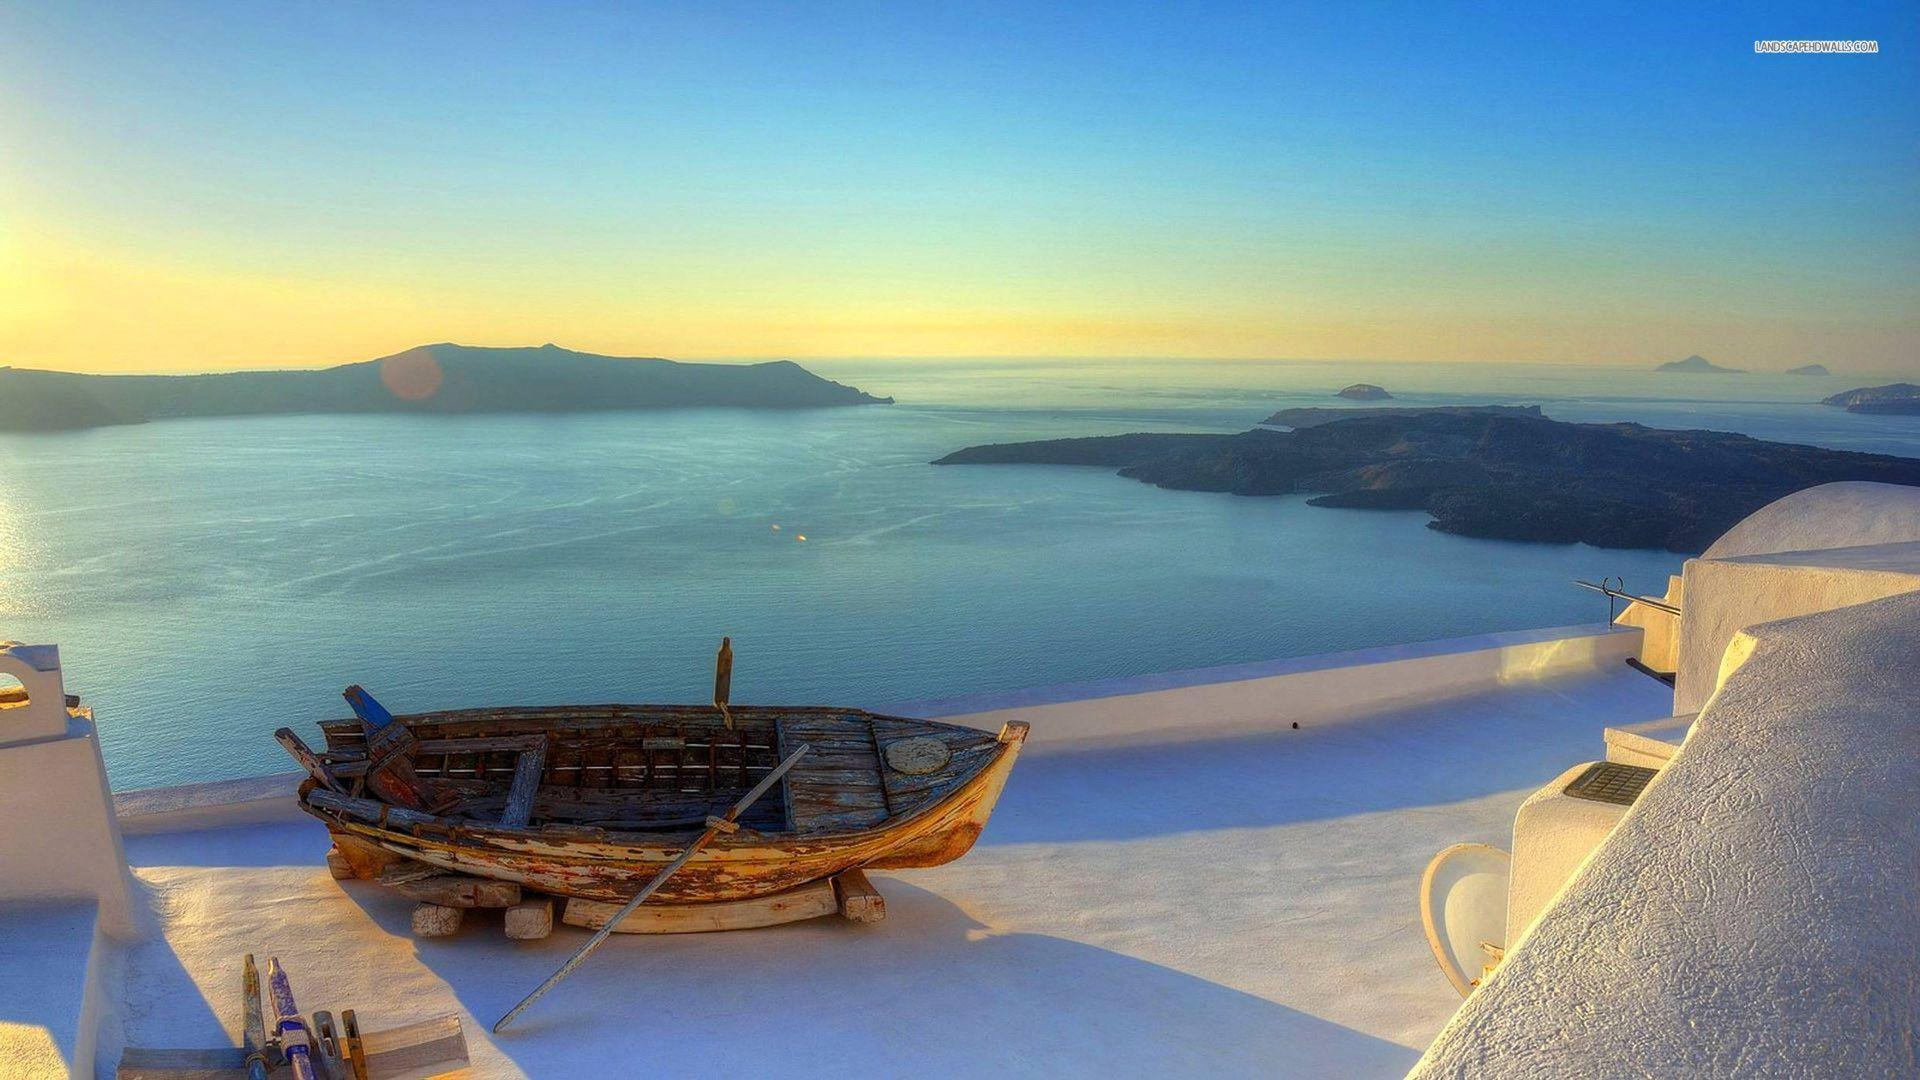 Sunset over Santorini wallpapers #